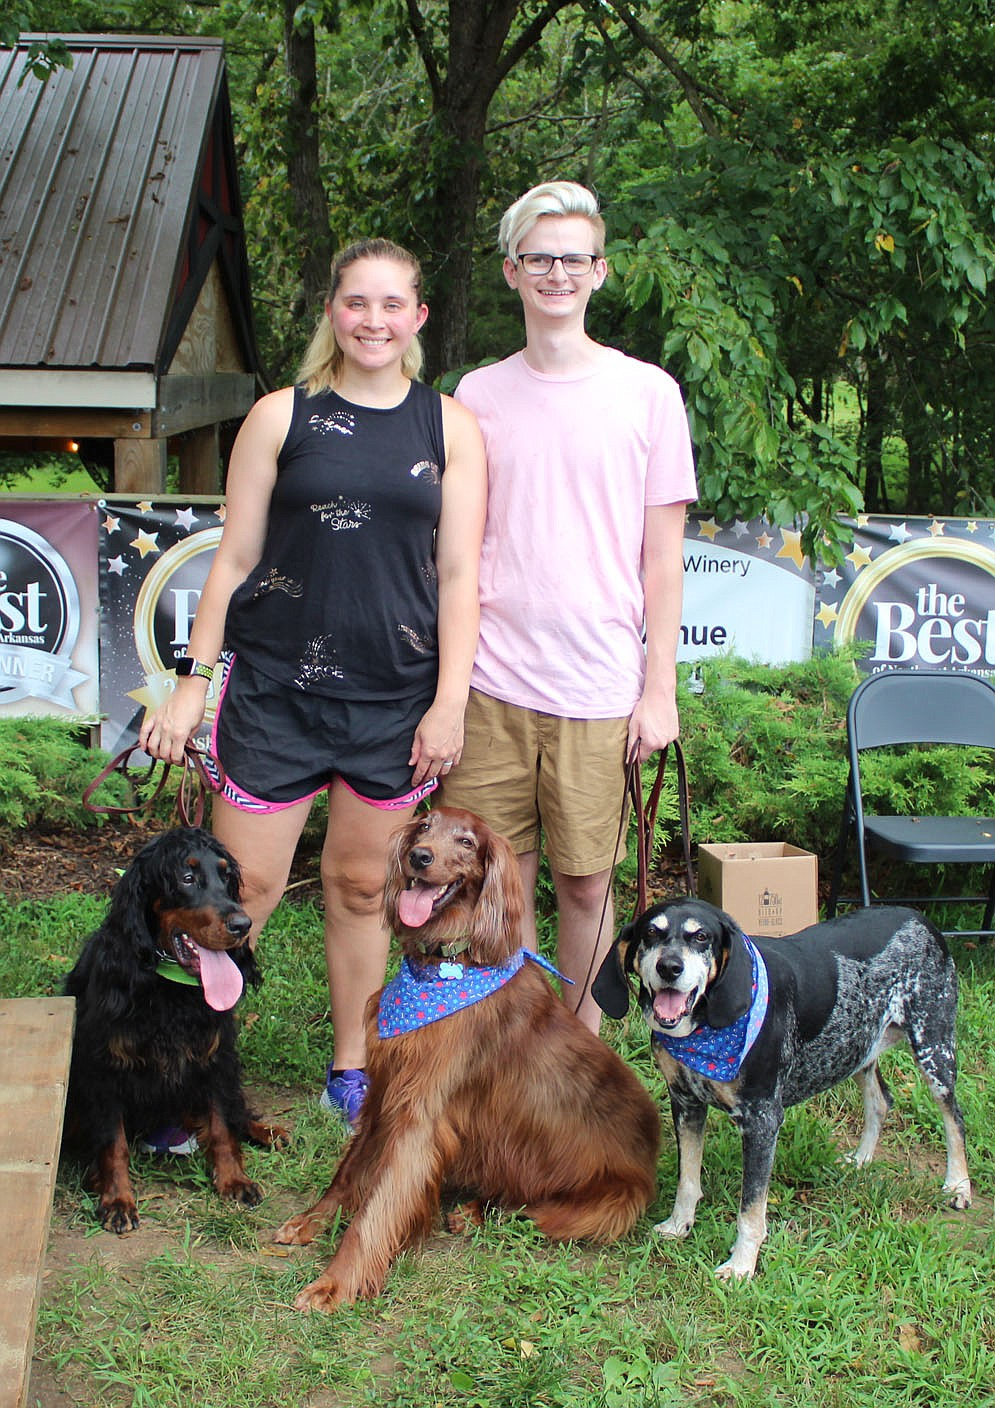 Kara and Brad Nickell help support the Humane Society with Ruby (from left), Arthur and Handsome on Aug. 1.  (NWA Democrat-Gazette/Carin Schoppmeyer)